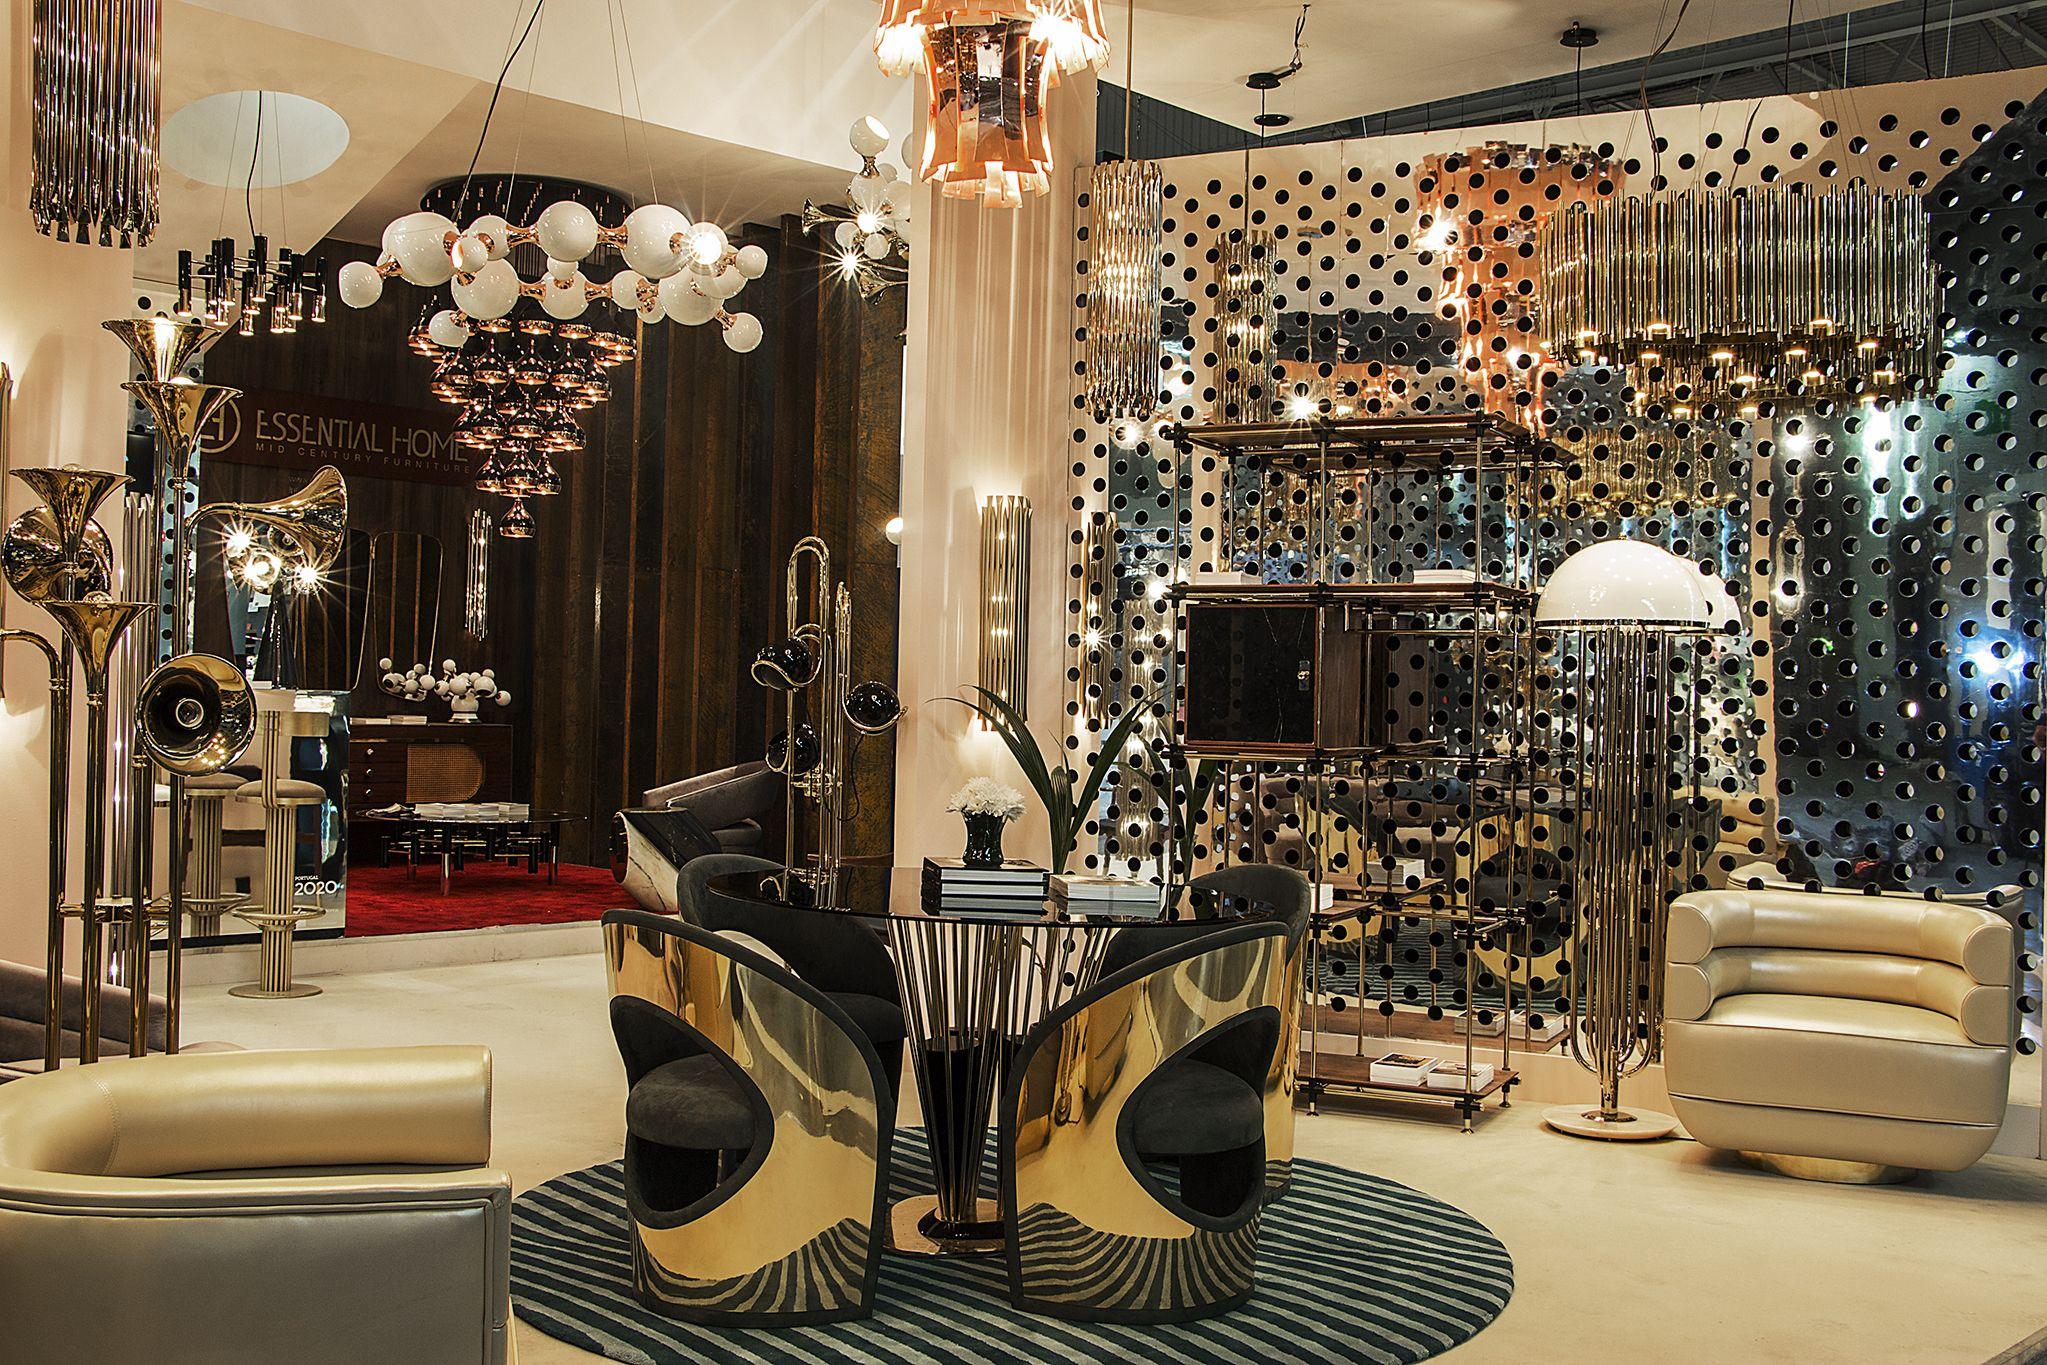 THE FIRST DAY OF DELIGHTFULL AT MAISON ET OBJET PARIS U002716